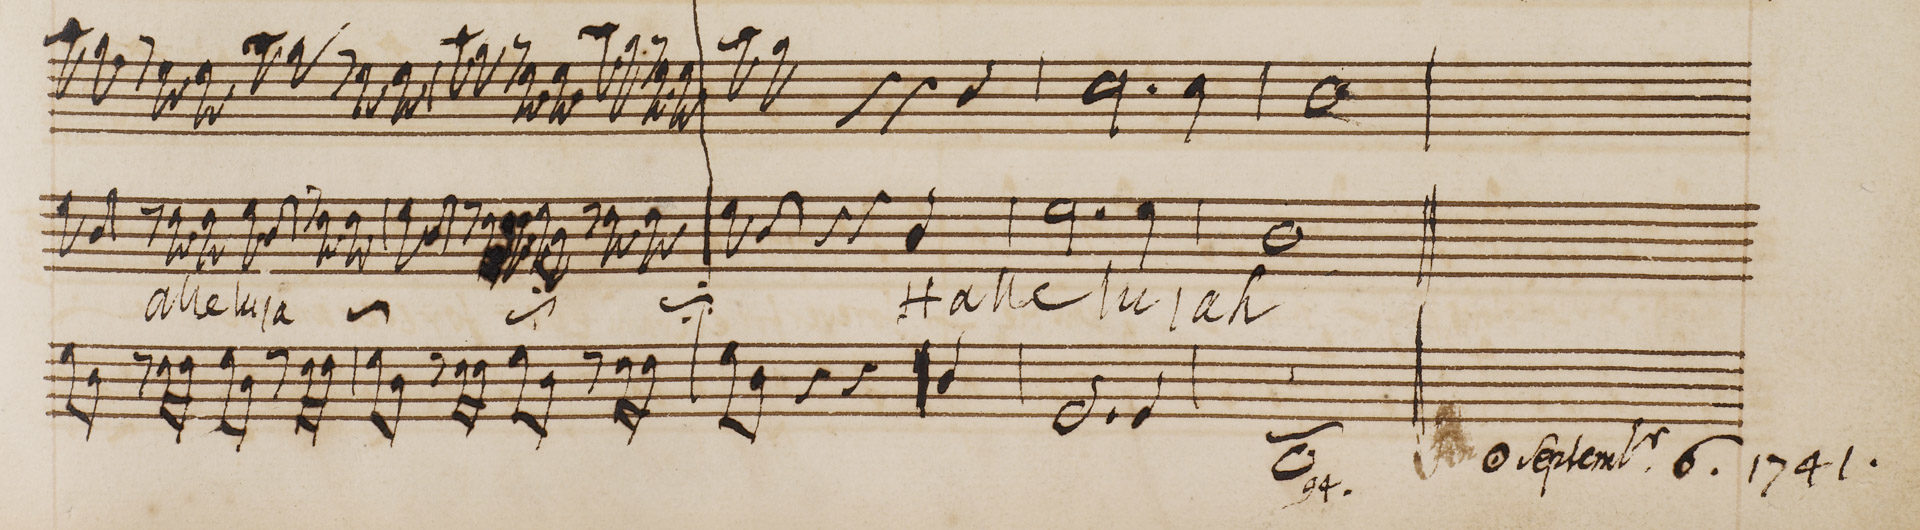 End of the Hallelujah chorus from the autograph score of Messiah © British Library Board (R.M.20.f.2)